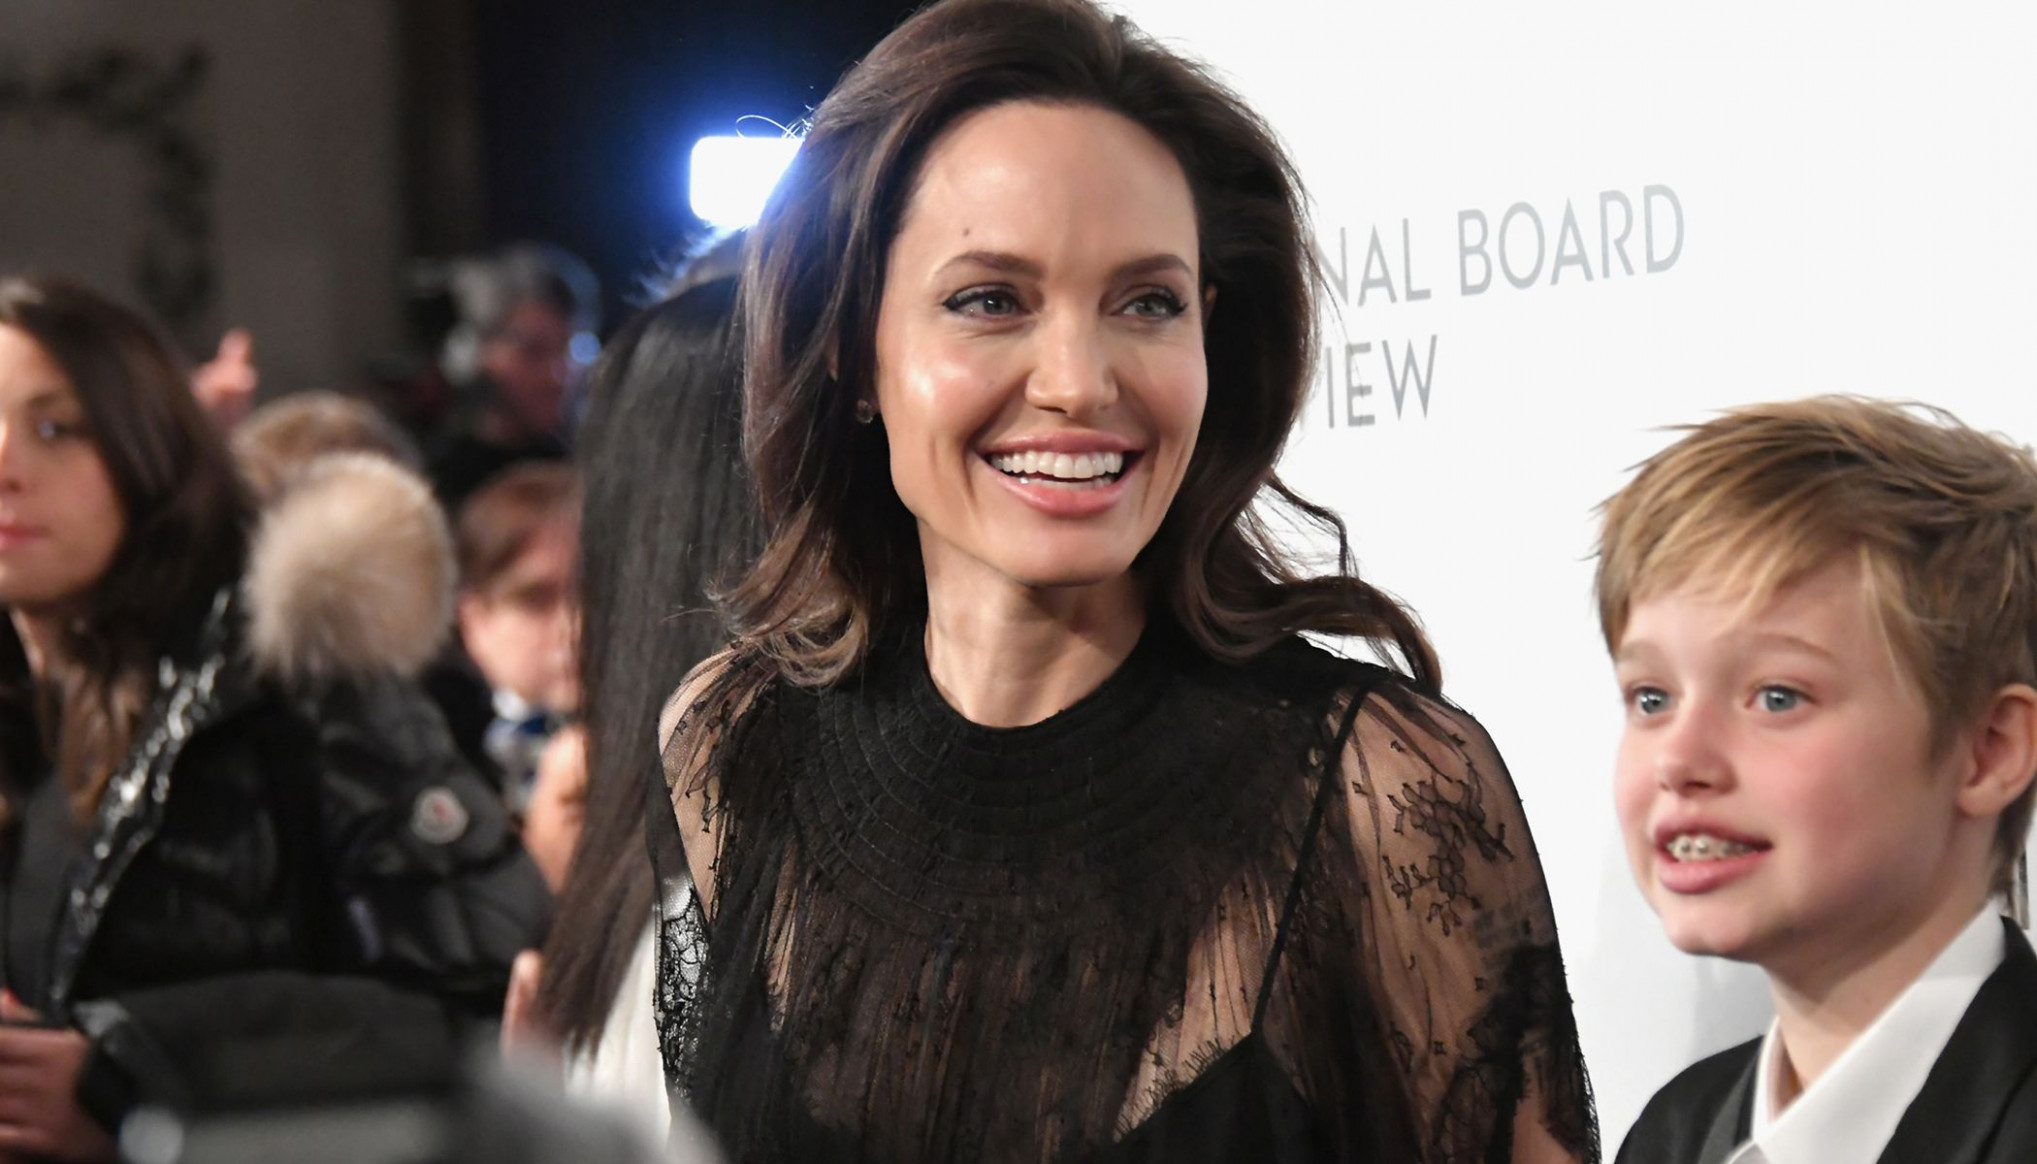 angelina jolie cadillac commercial 7 New Review 7*7 ..